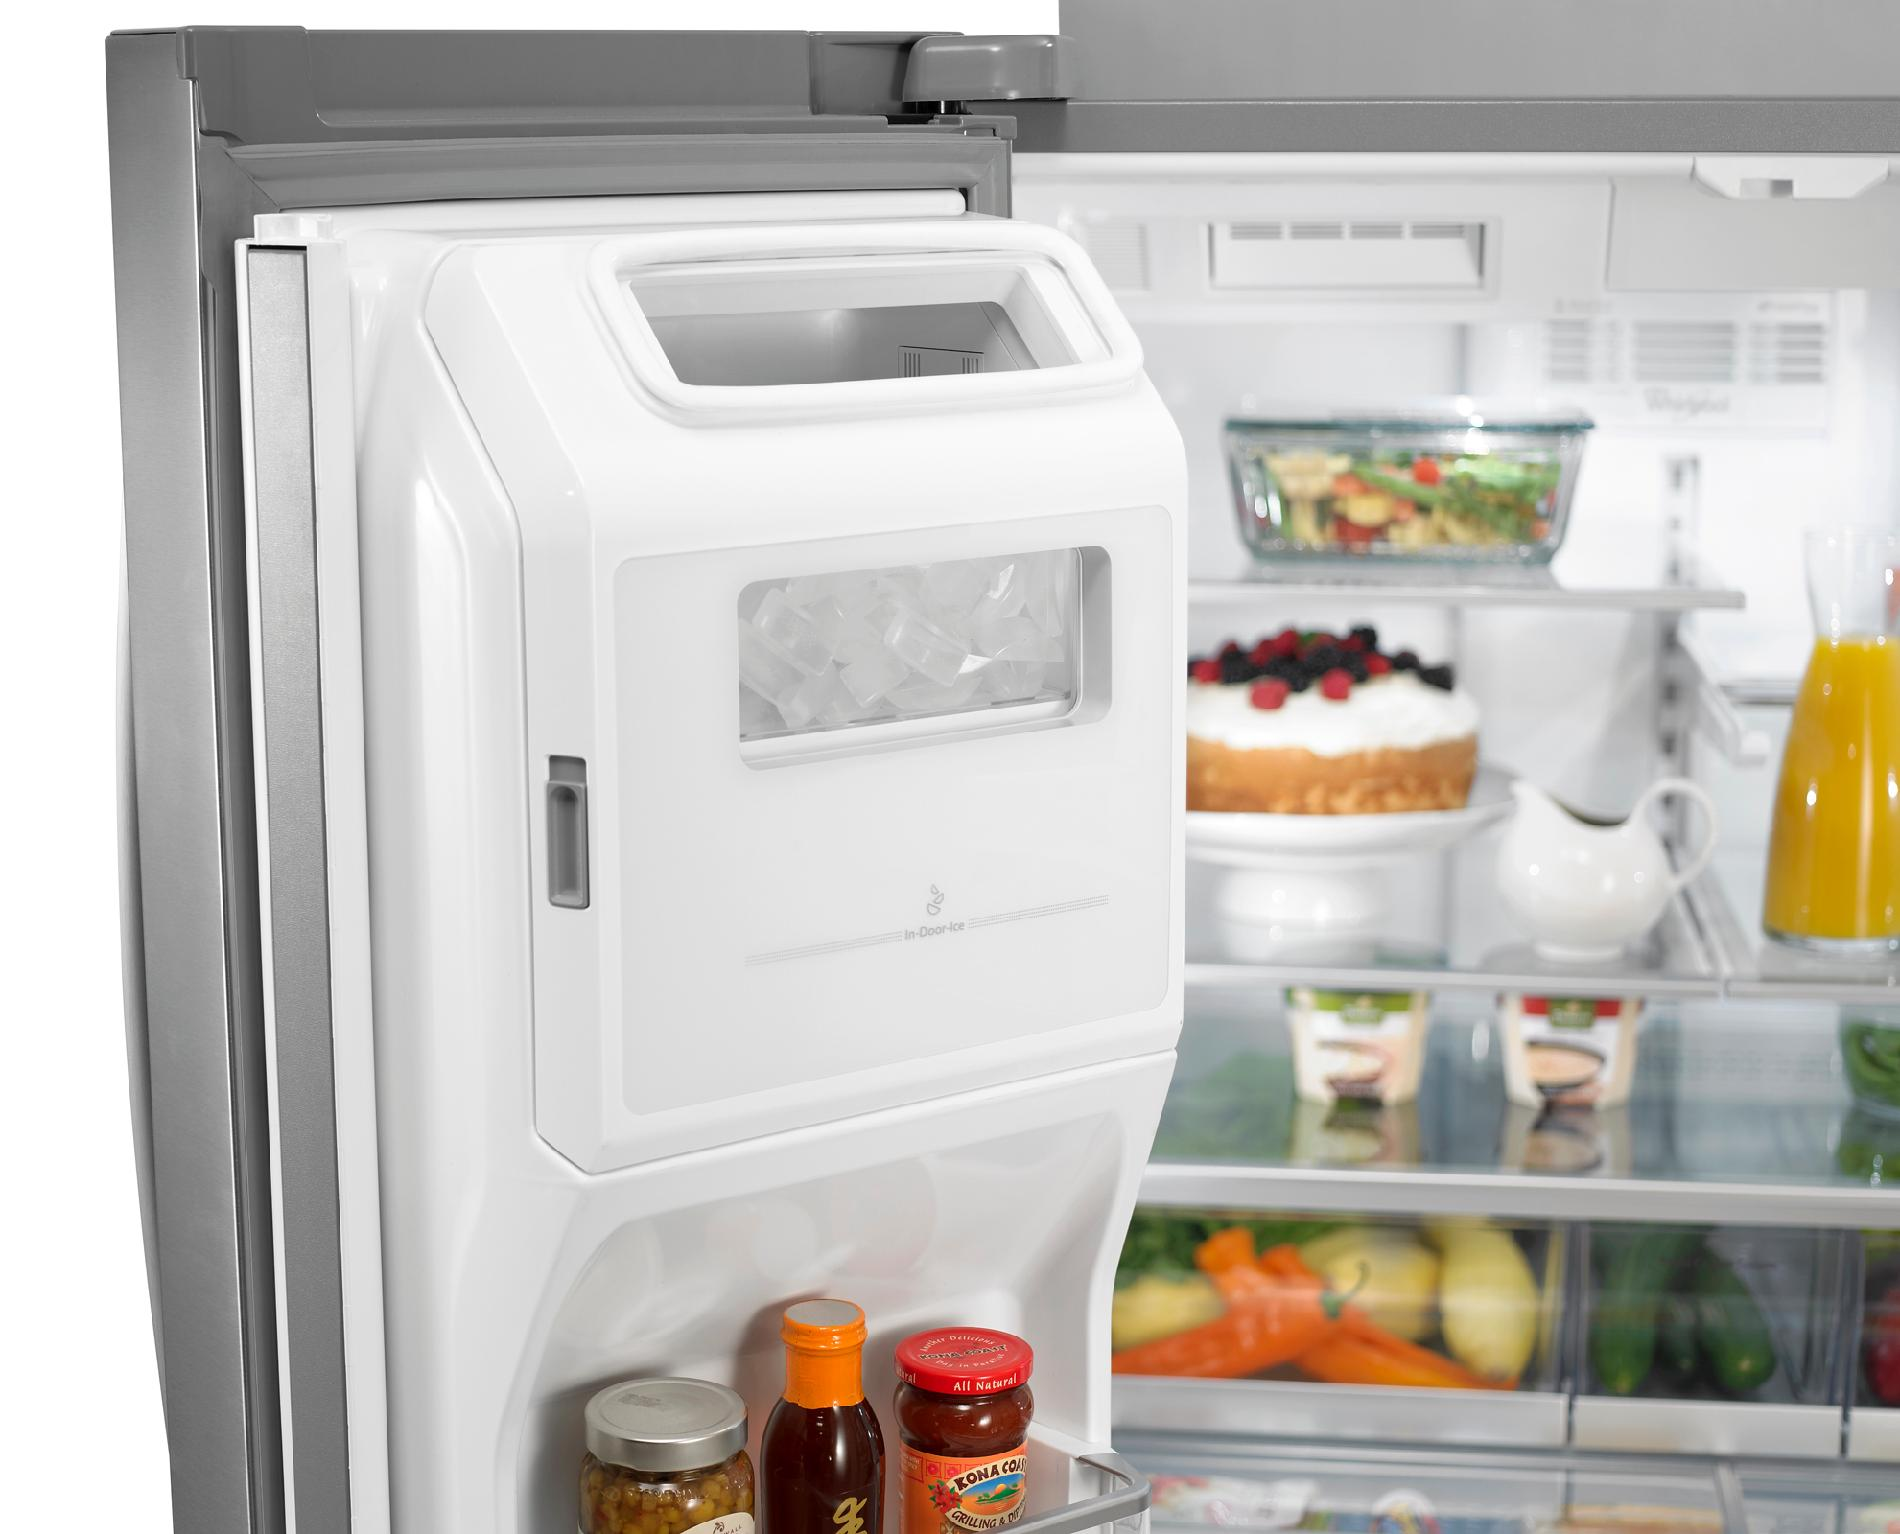 Whirlpool 28.1 cu. ft. French Door Refrigerator w/ Most Flexible Storage - Stainless Steel